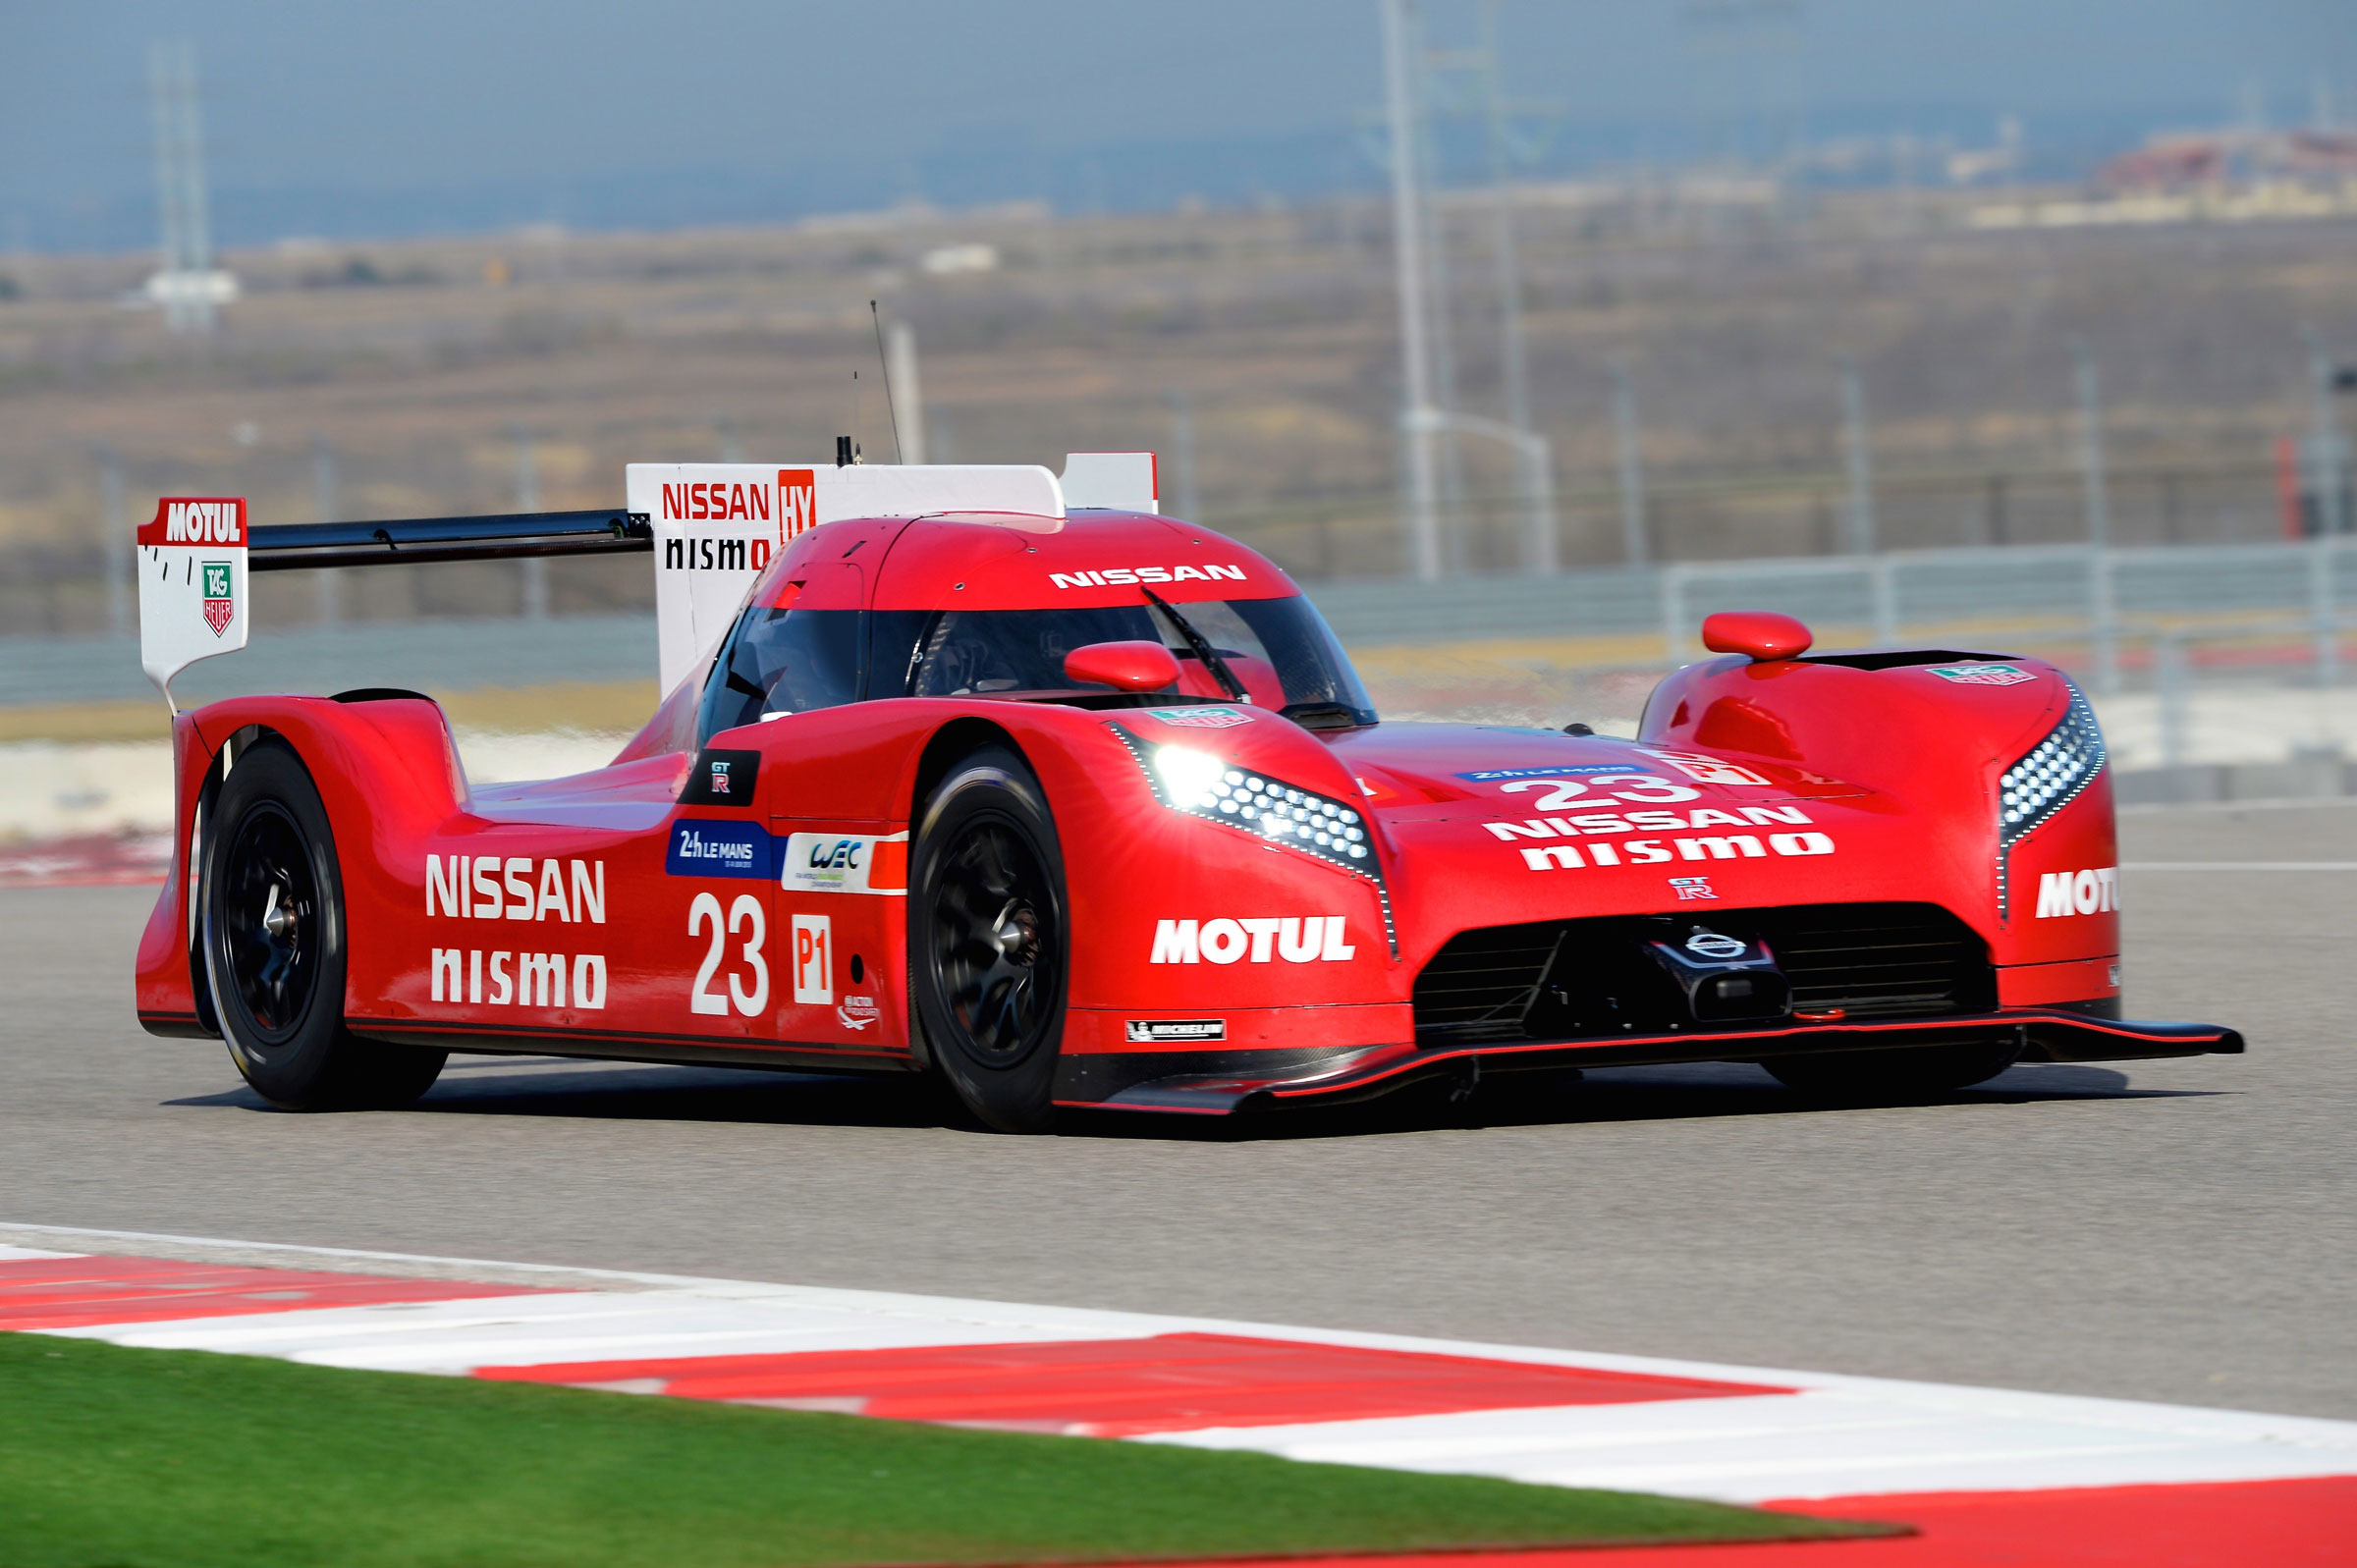 Nissan GT-R LM Nismo Withdrawn from 2016 FIA WEC